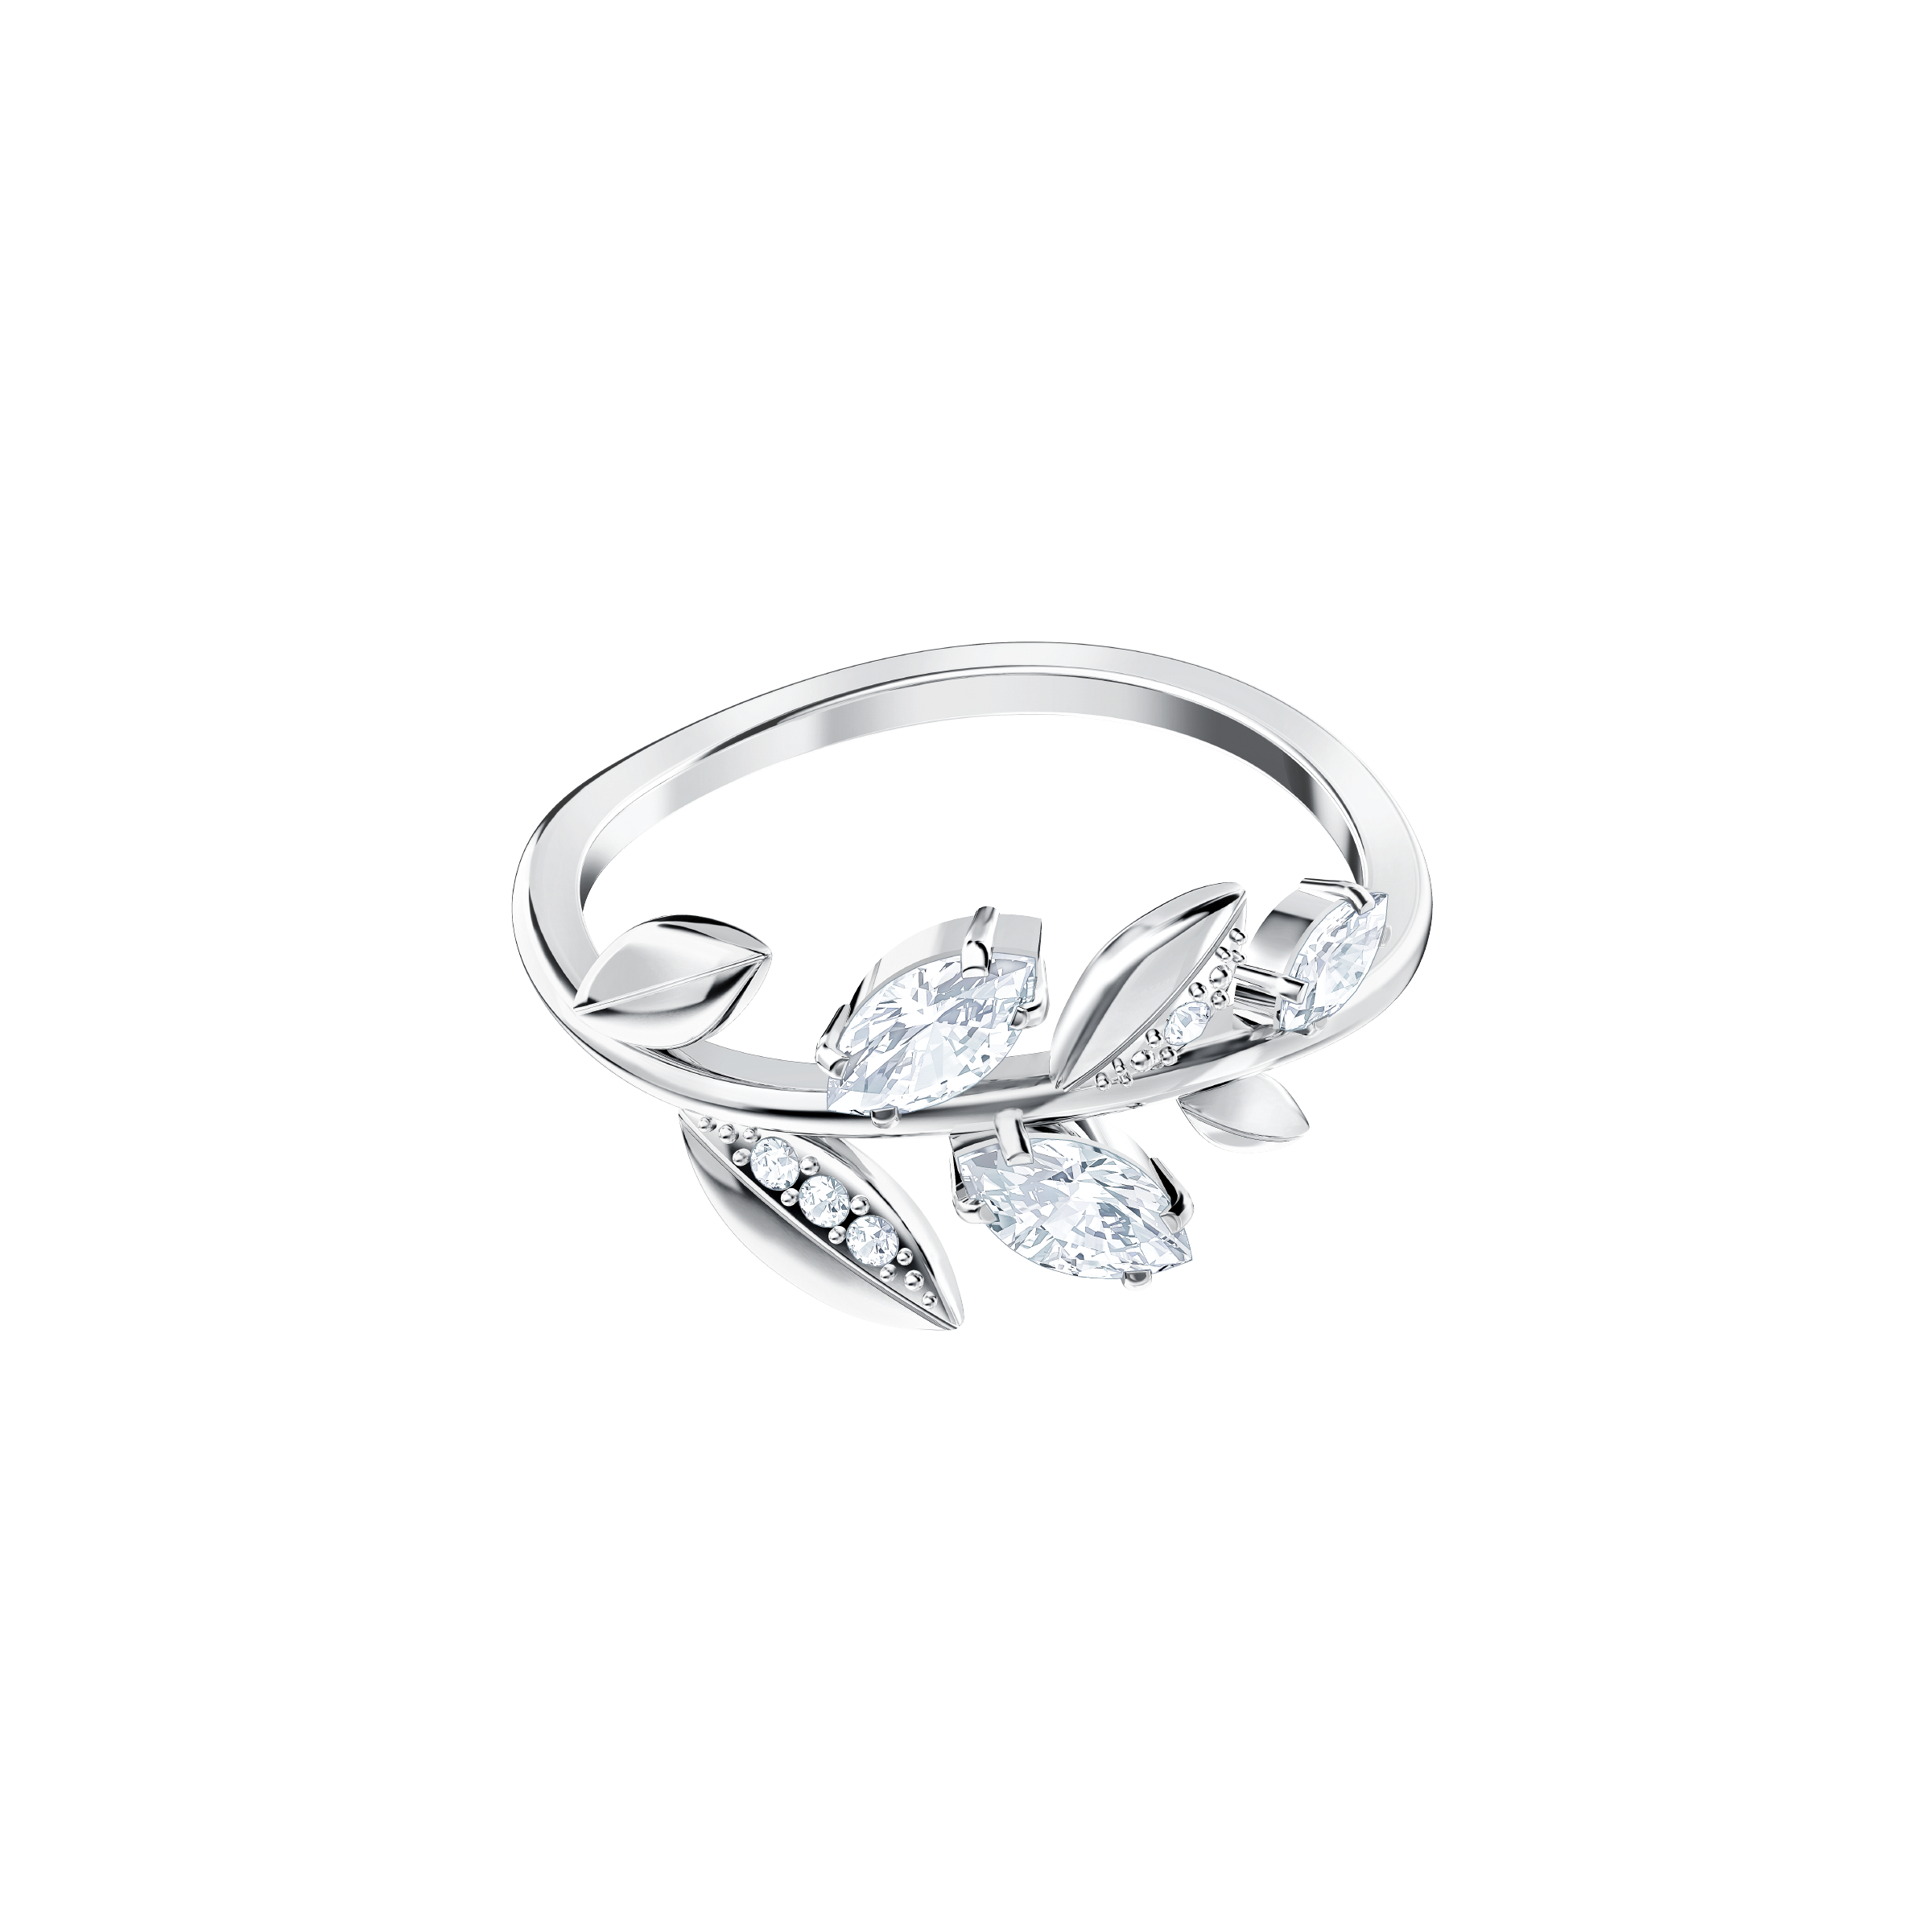 Mayfly Ring, White, Rhodium Plating